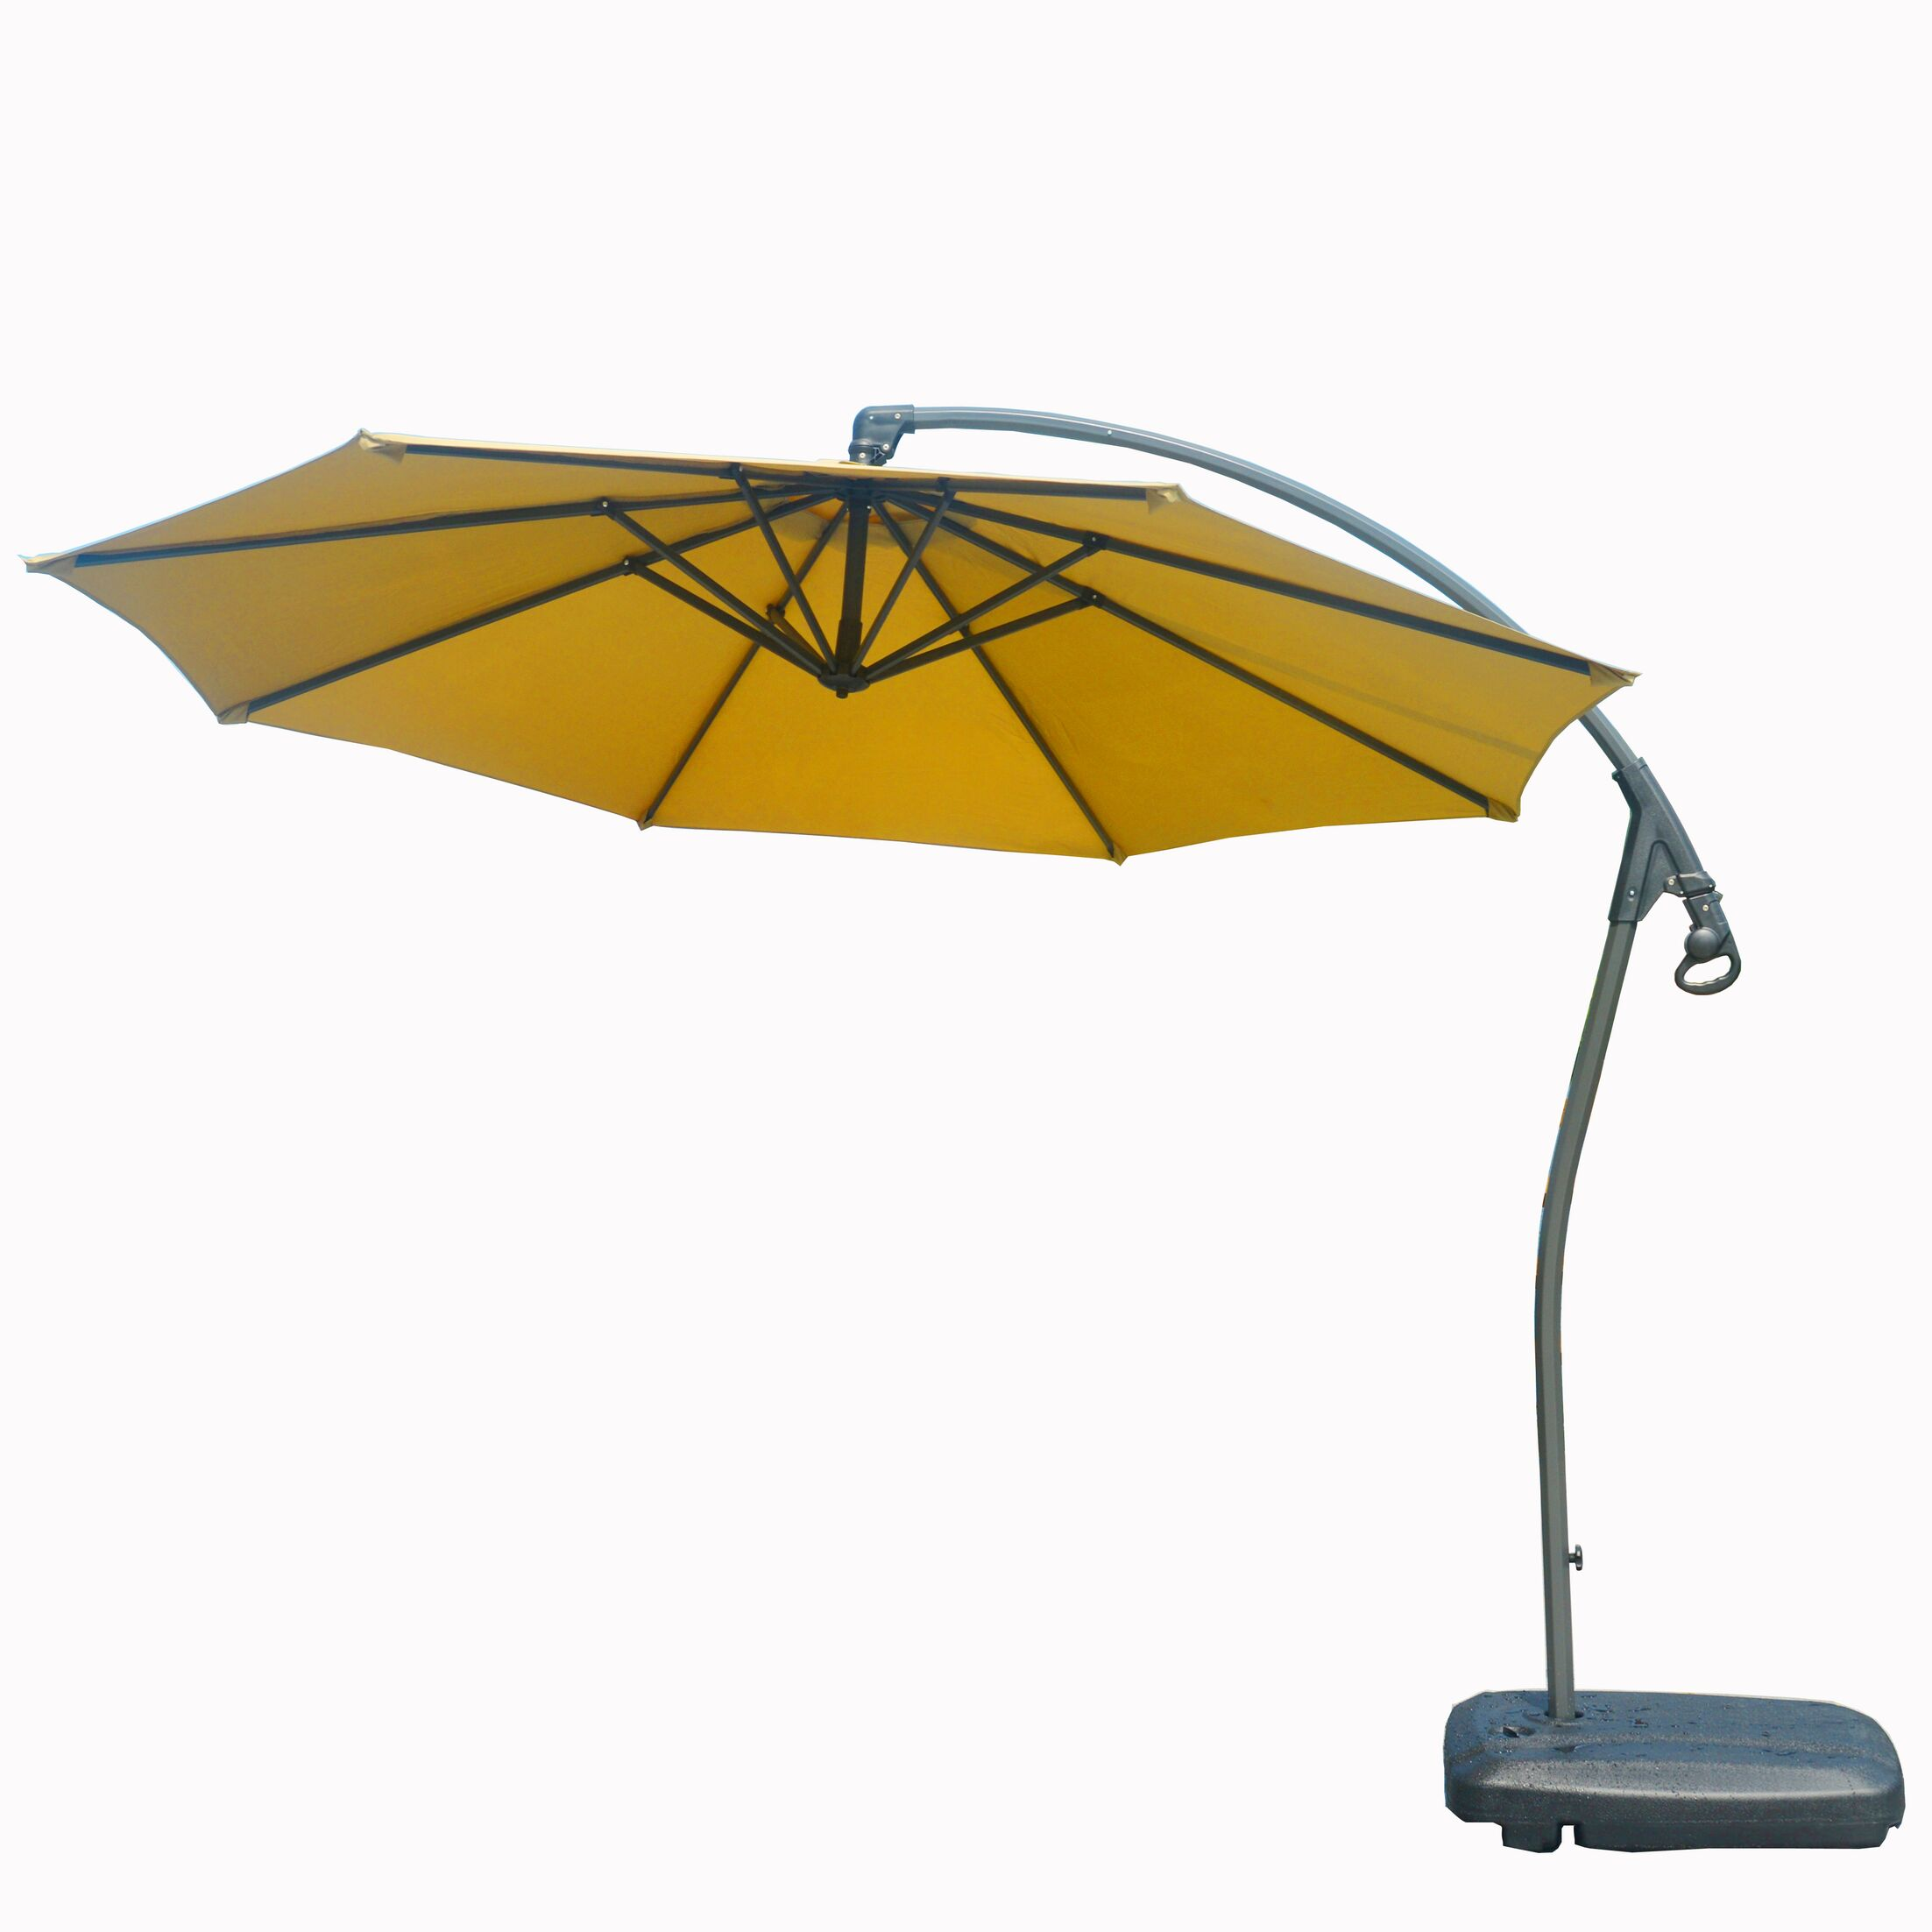 Hemmer 10' Cantilever Umbrella Fabric Color: Beige